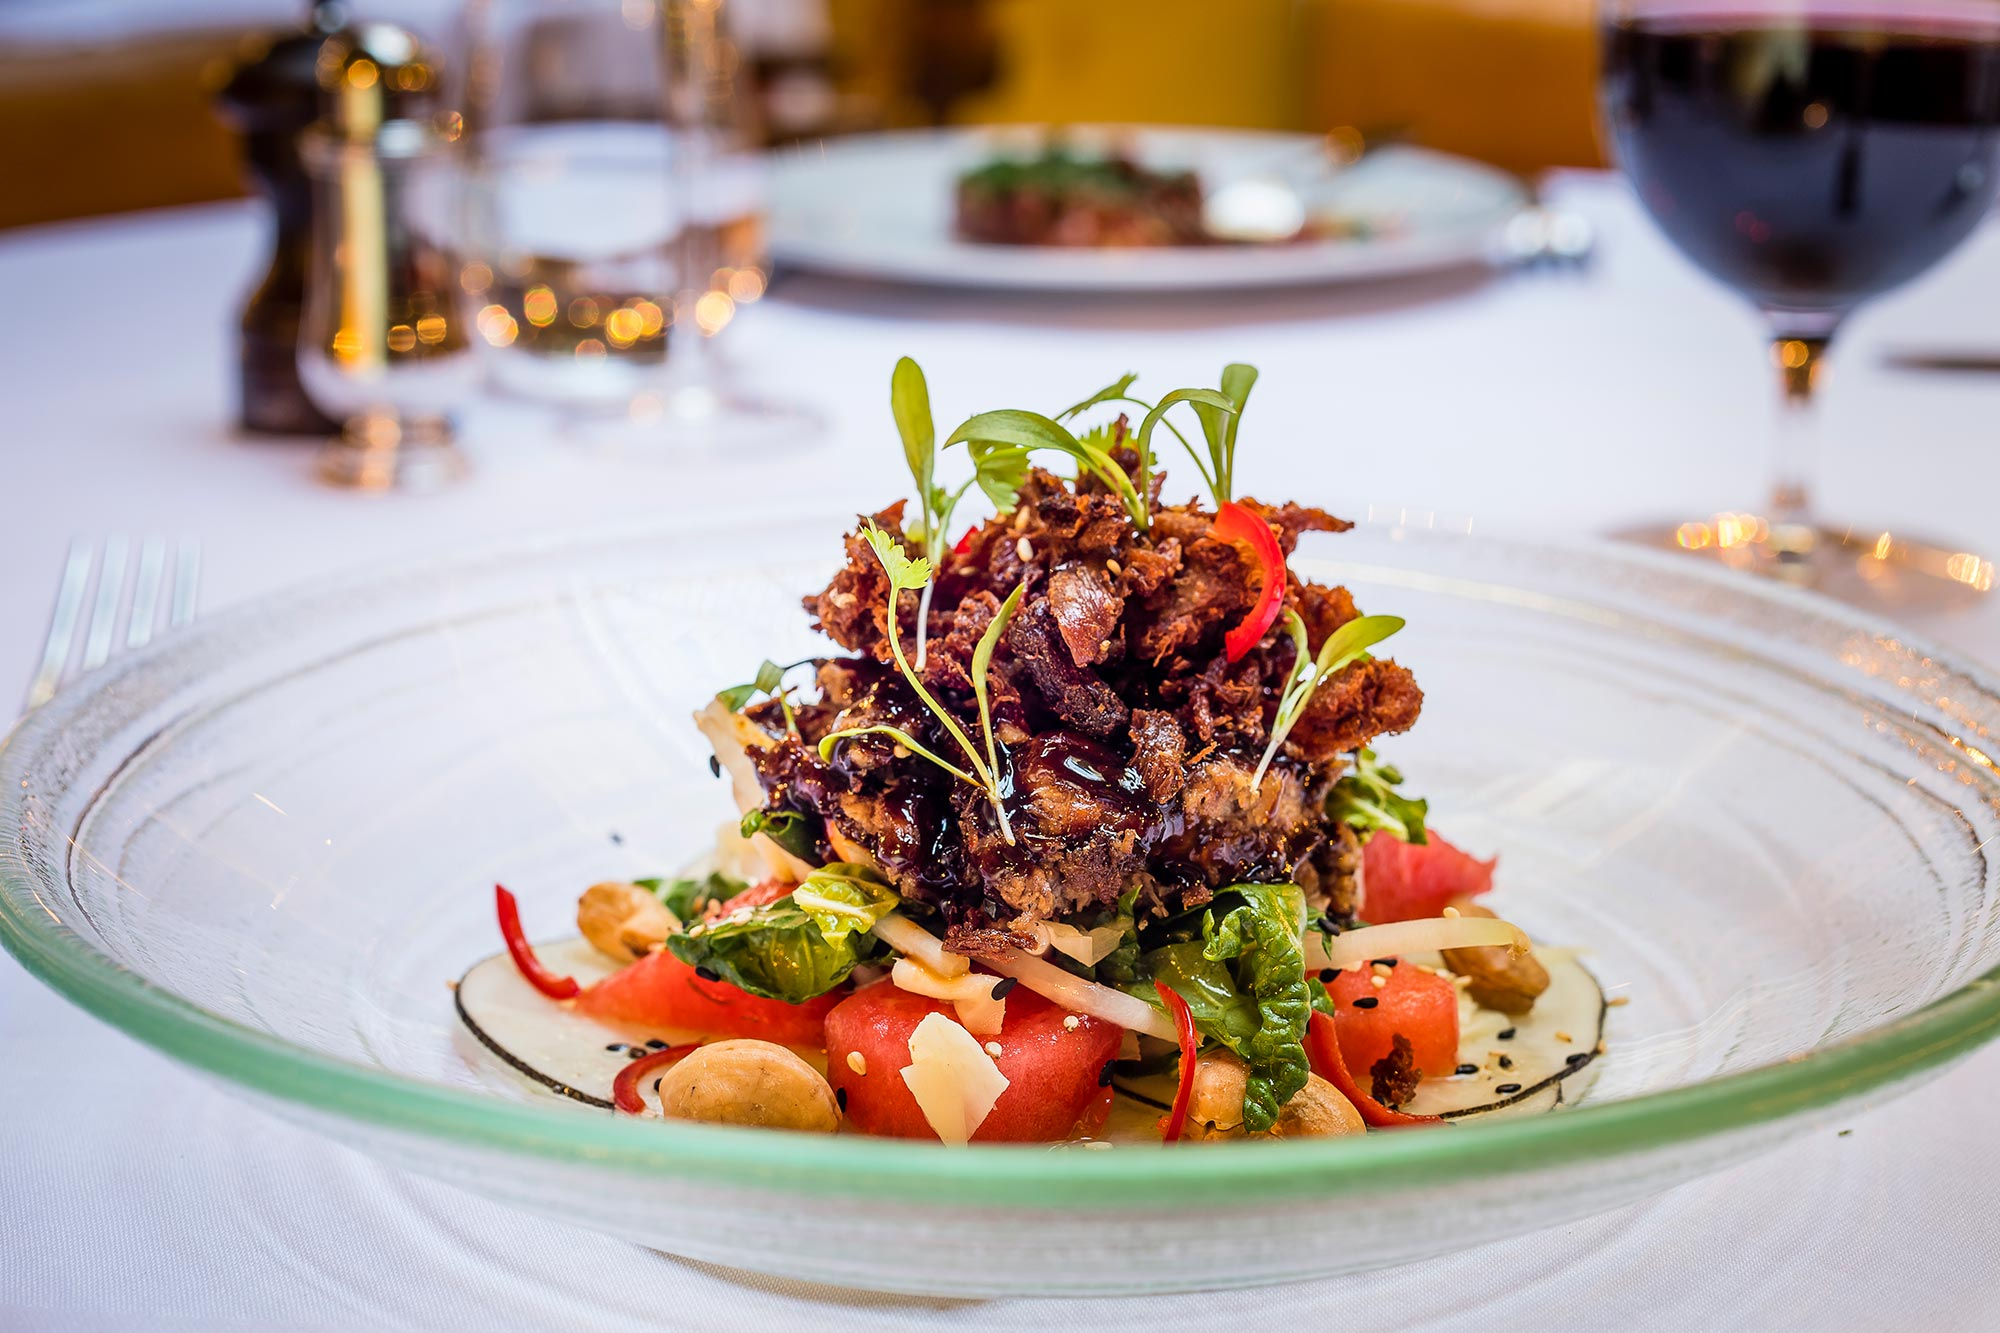 Crispy Duck Salad, Watermelon and Cashews at The Ivy Market Grill - The Ivy Market Grill